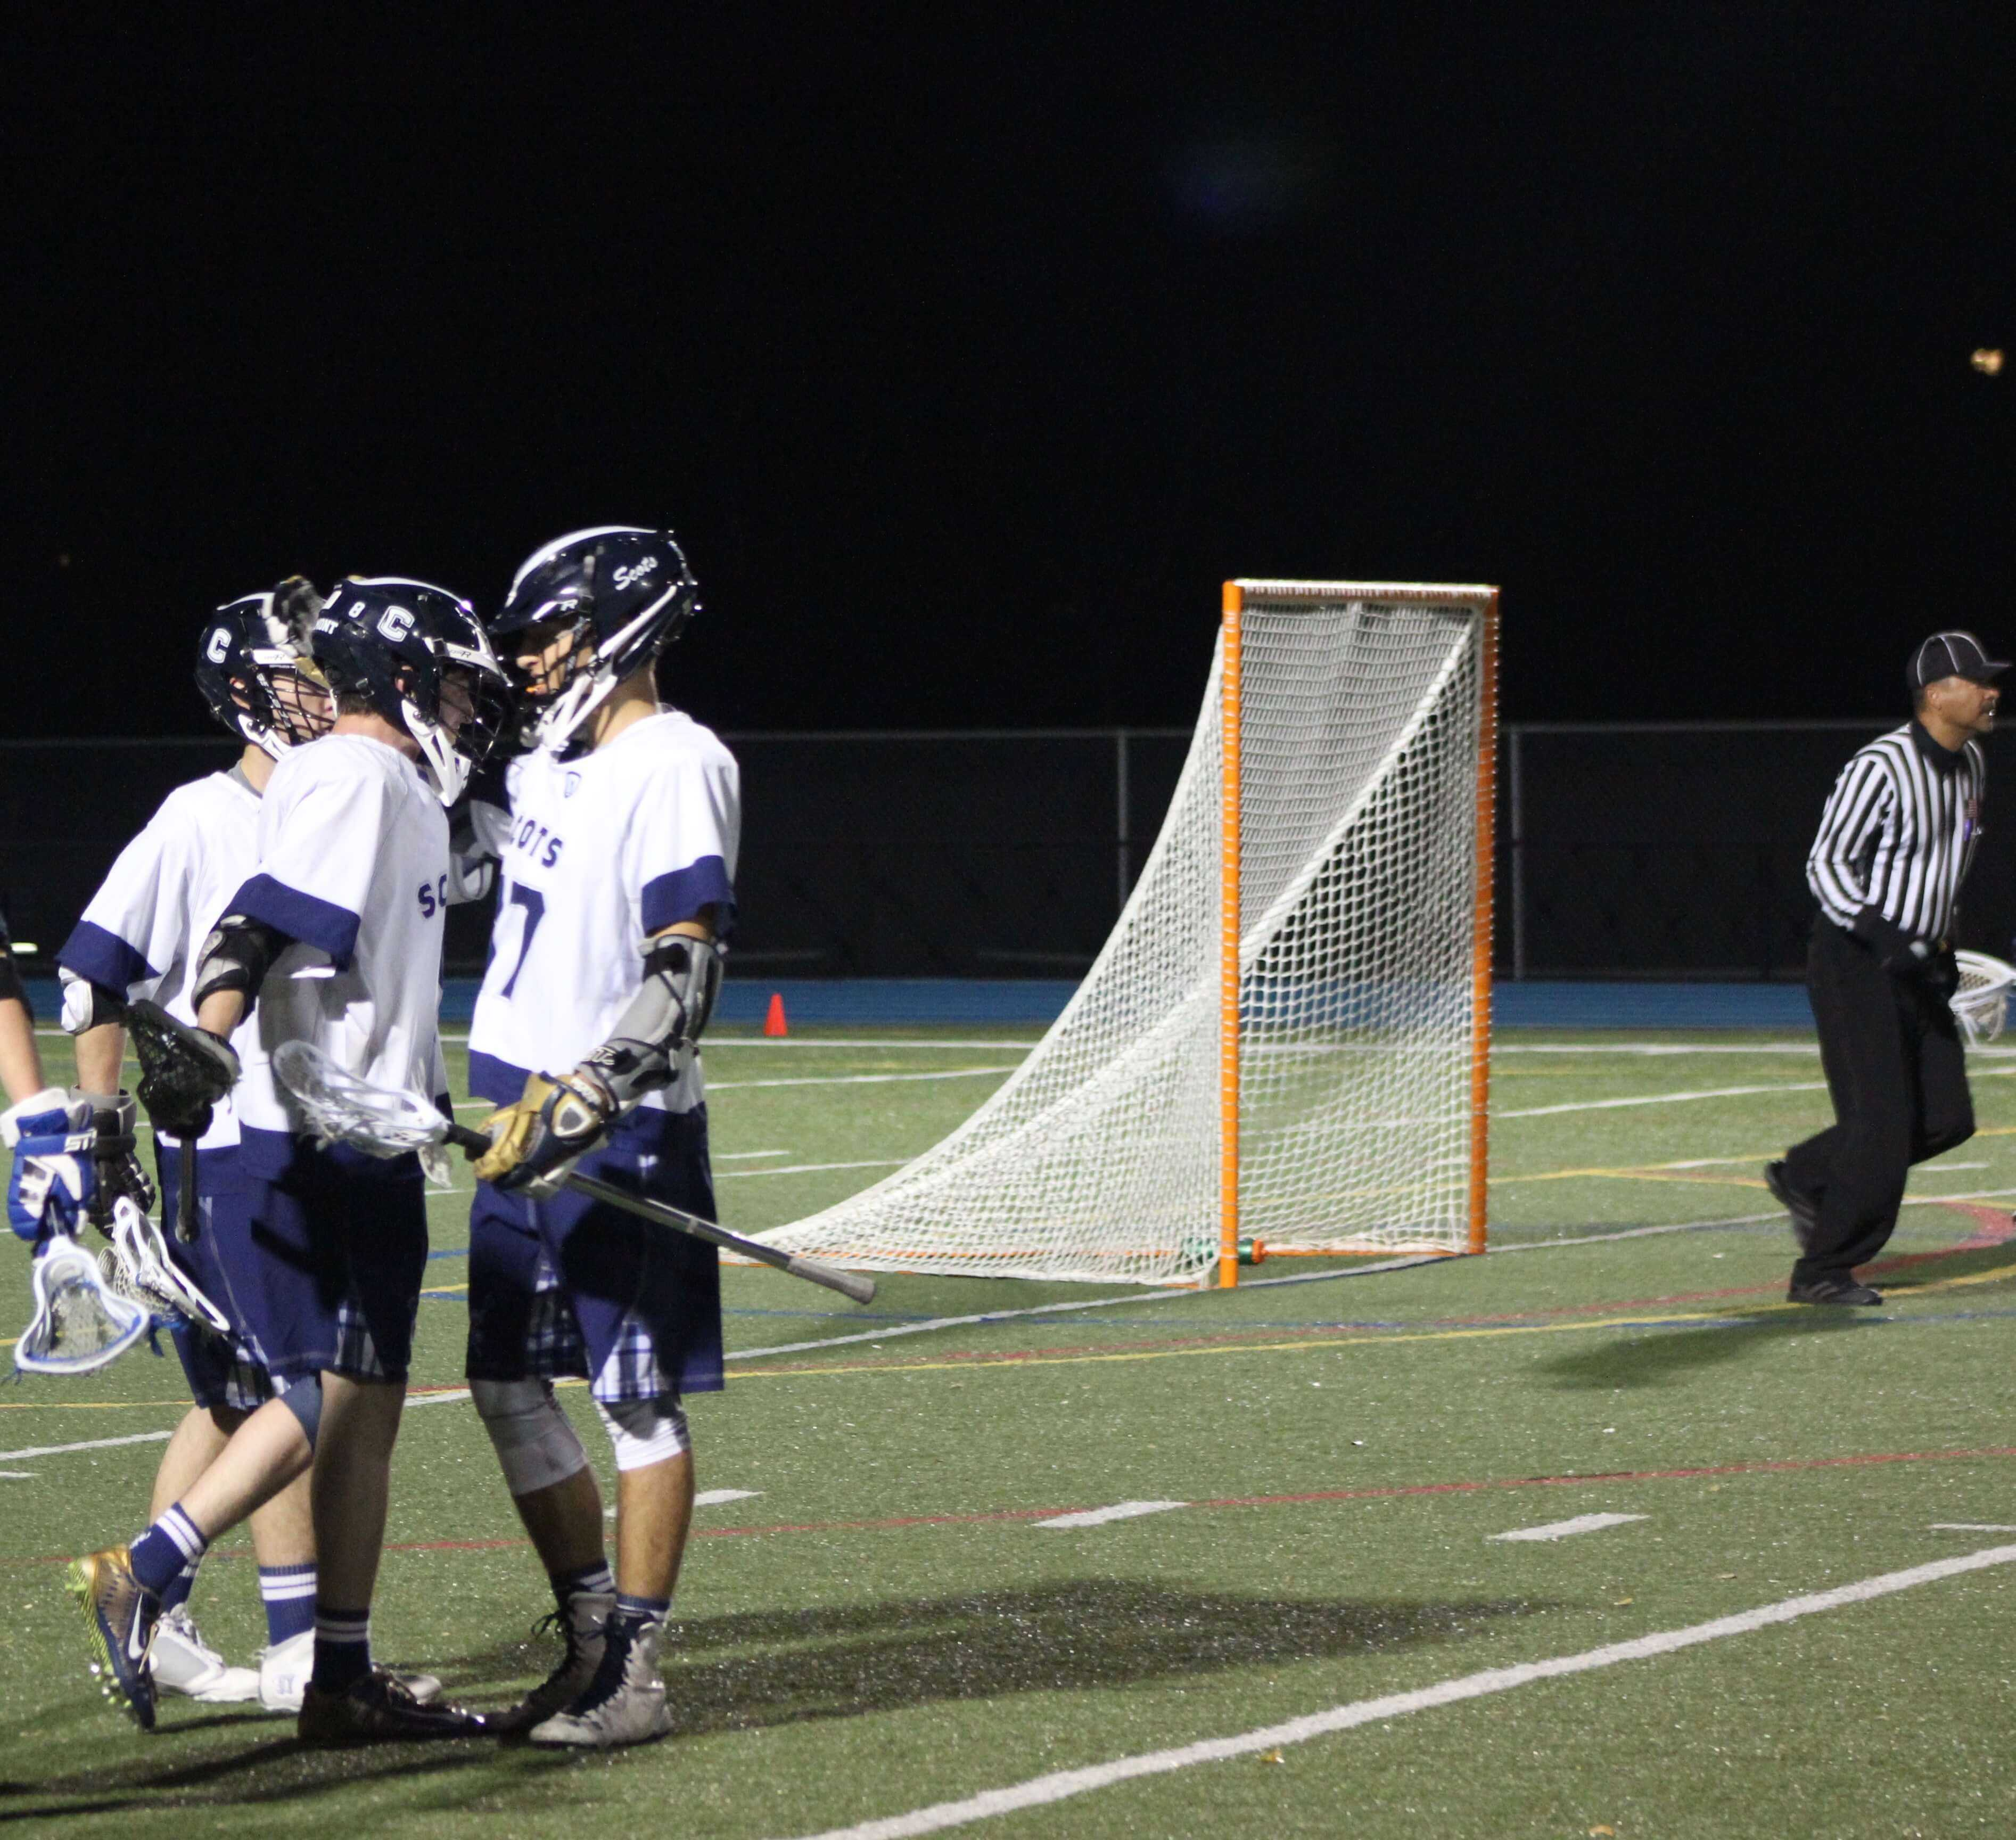 Jack Morris, a senior, gets congratulated by his teammates after his goal.